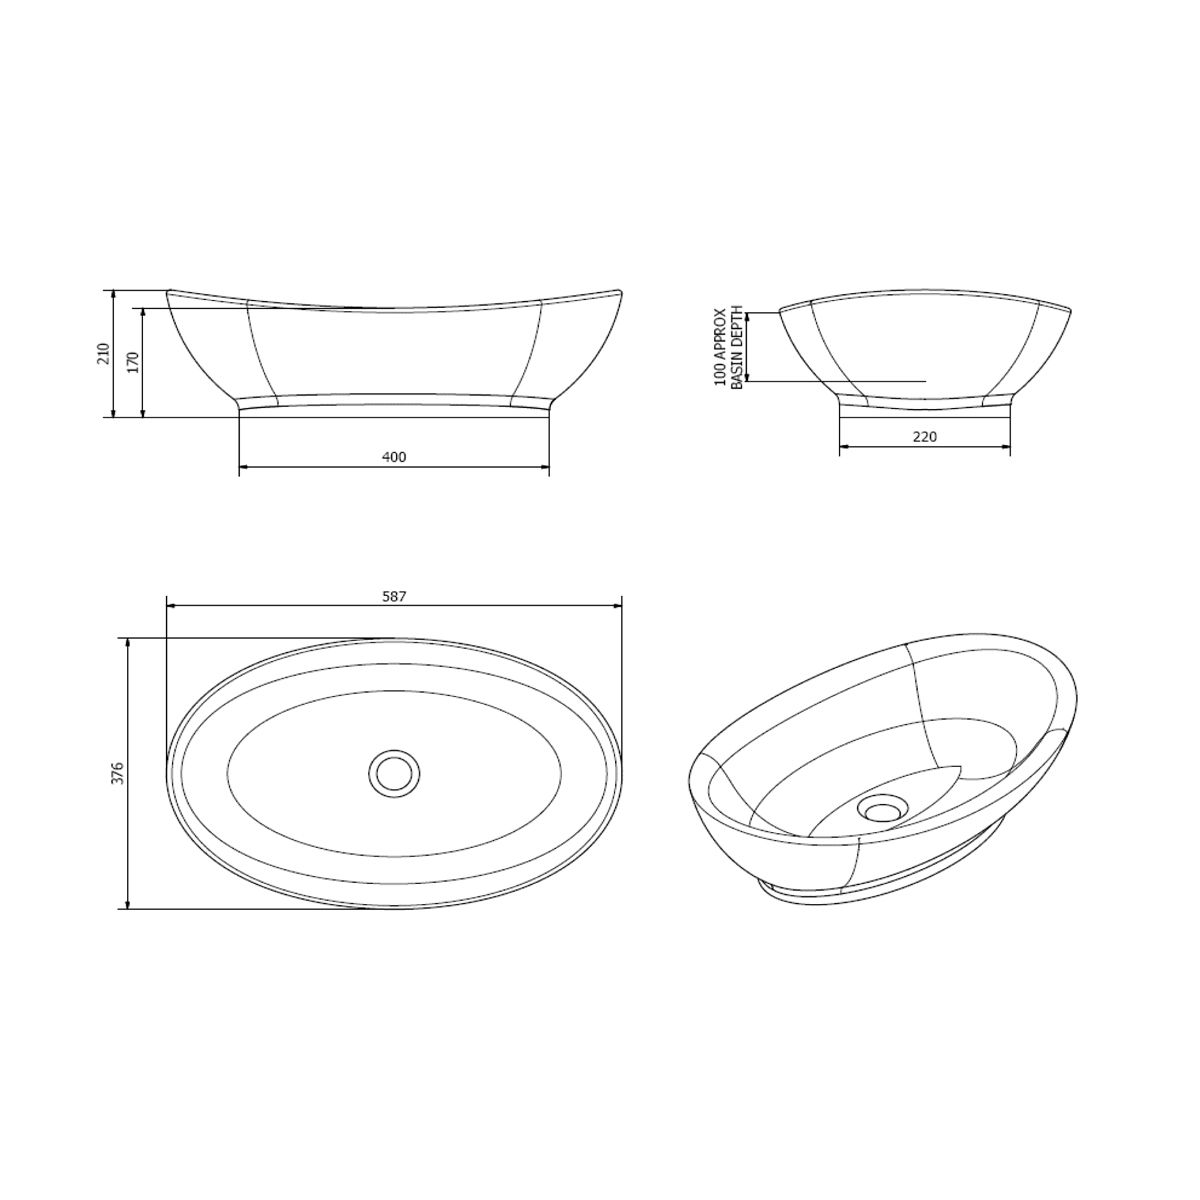 Cassellie Oval Countertop Basin 580mm Dimensions